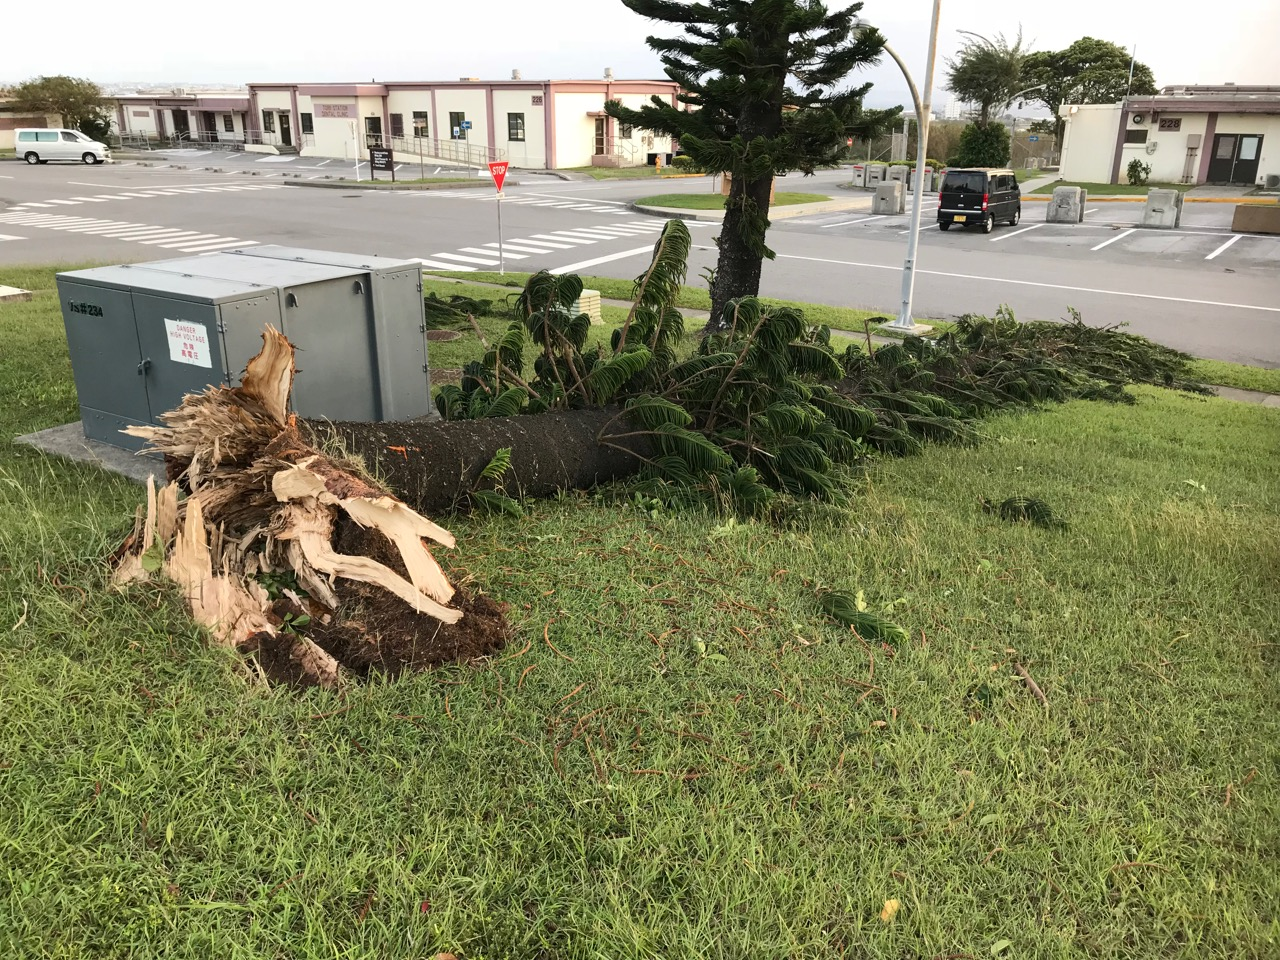 This tree at U.S. Army Garrison Okinawa in Sobe, Yomitan, also known as Torii Station, fell victim to Typhoon Saola in late October. Torii Station is the main Army installation in Okinawa. (Photo by Colin Sewake)